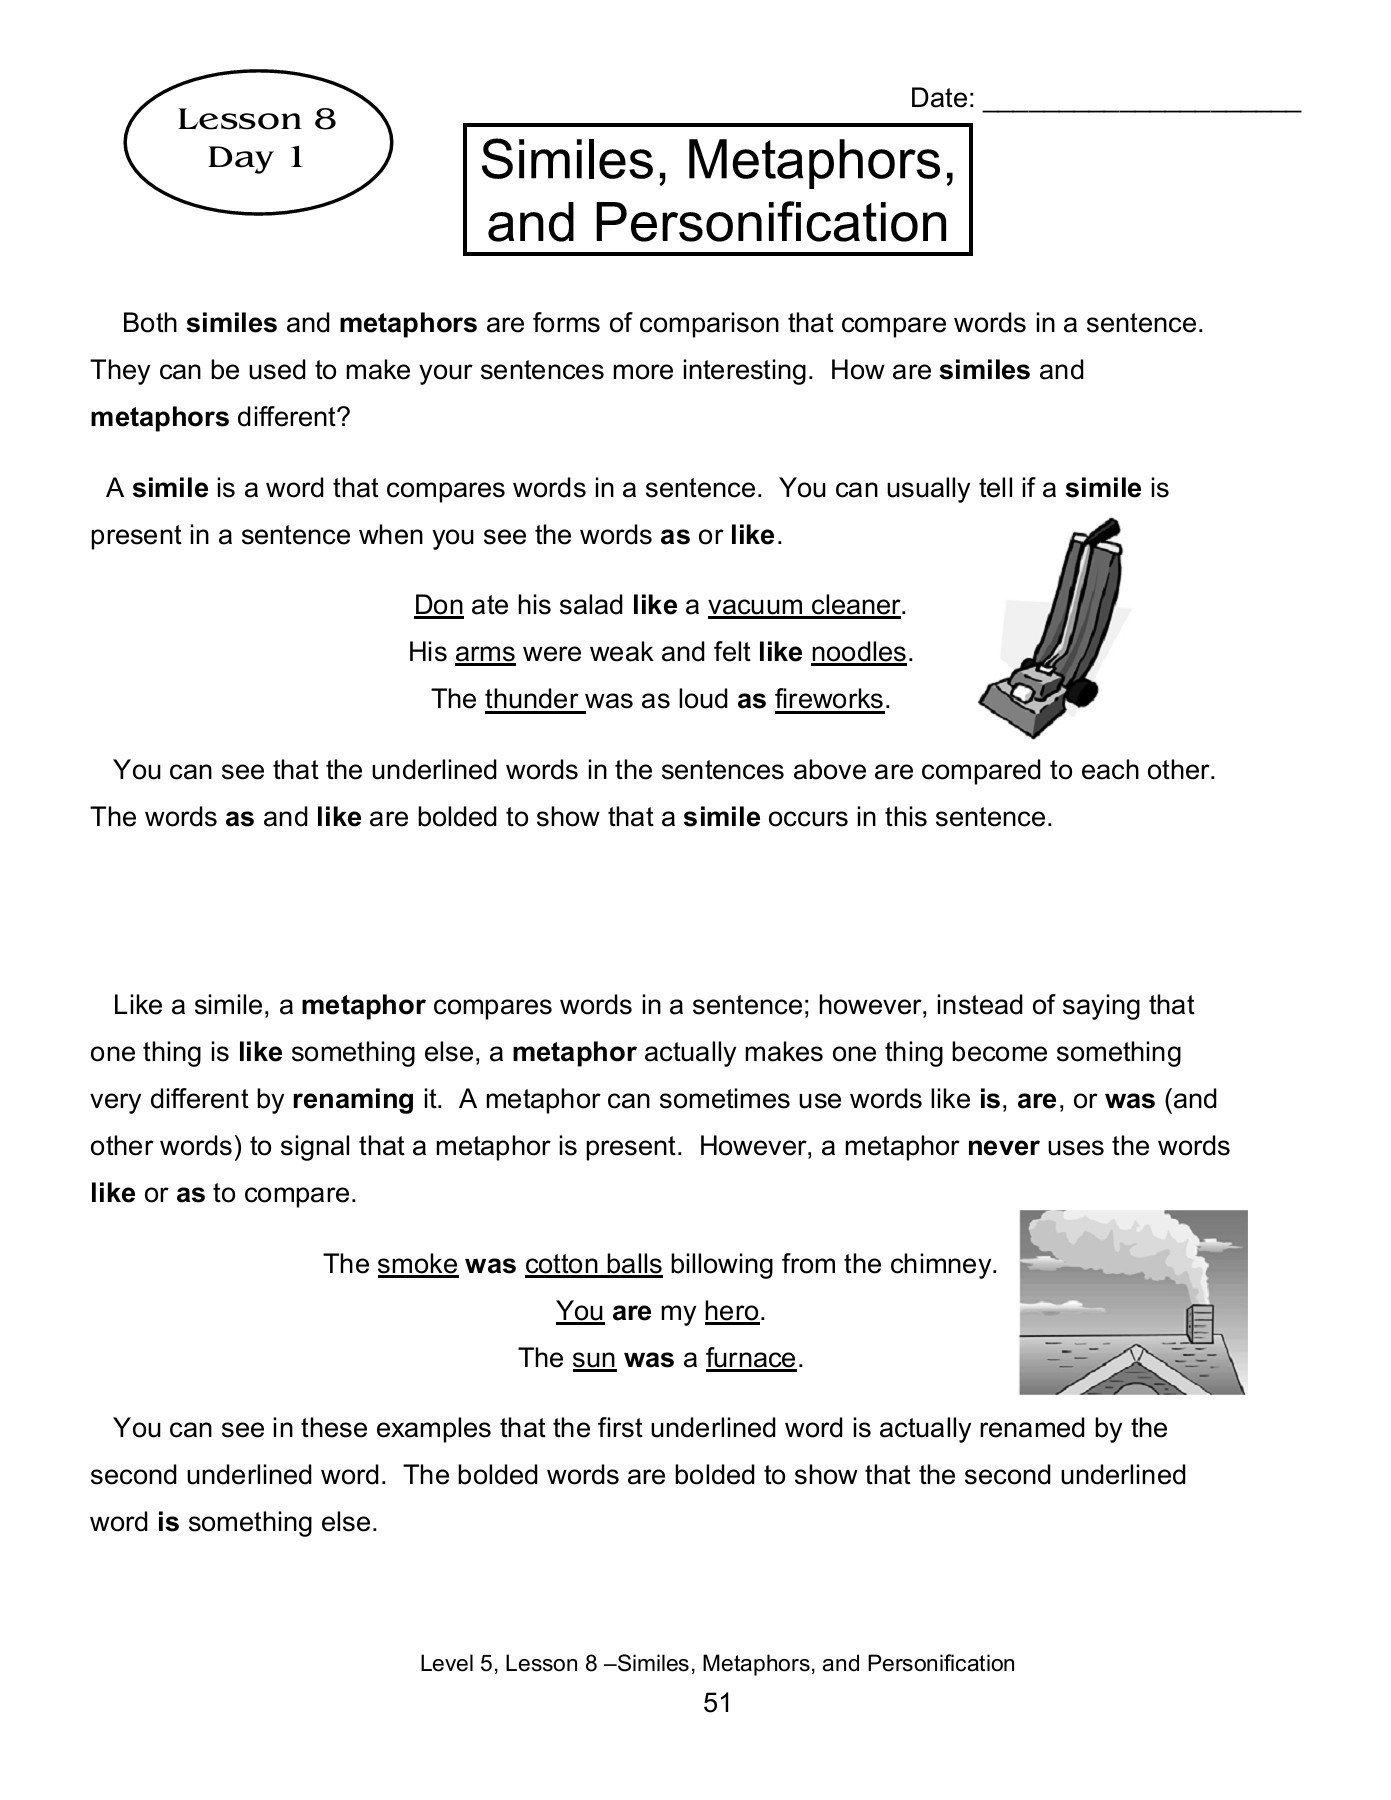 Personification Worksheet Answers Lesson 8 Similes Metaphors and Personification Pages 1